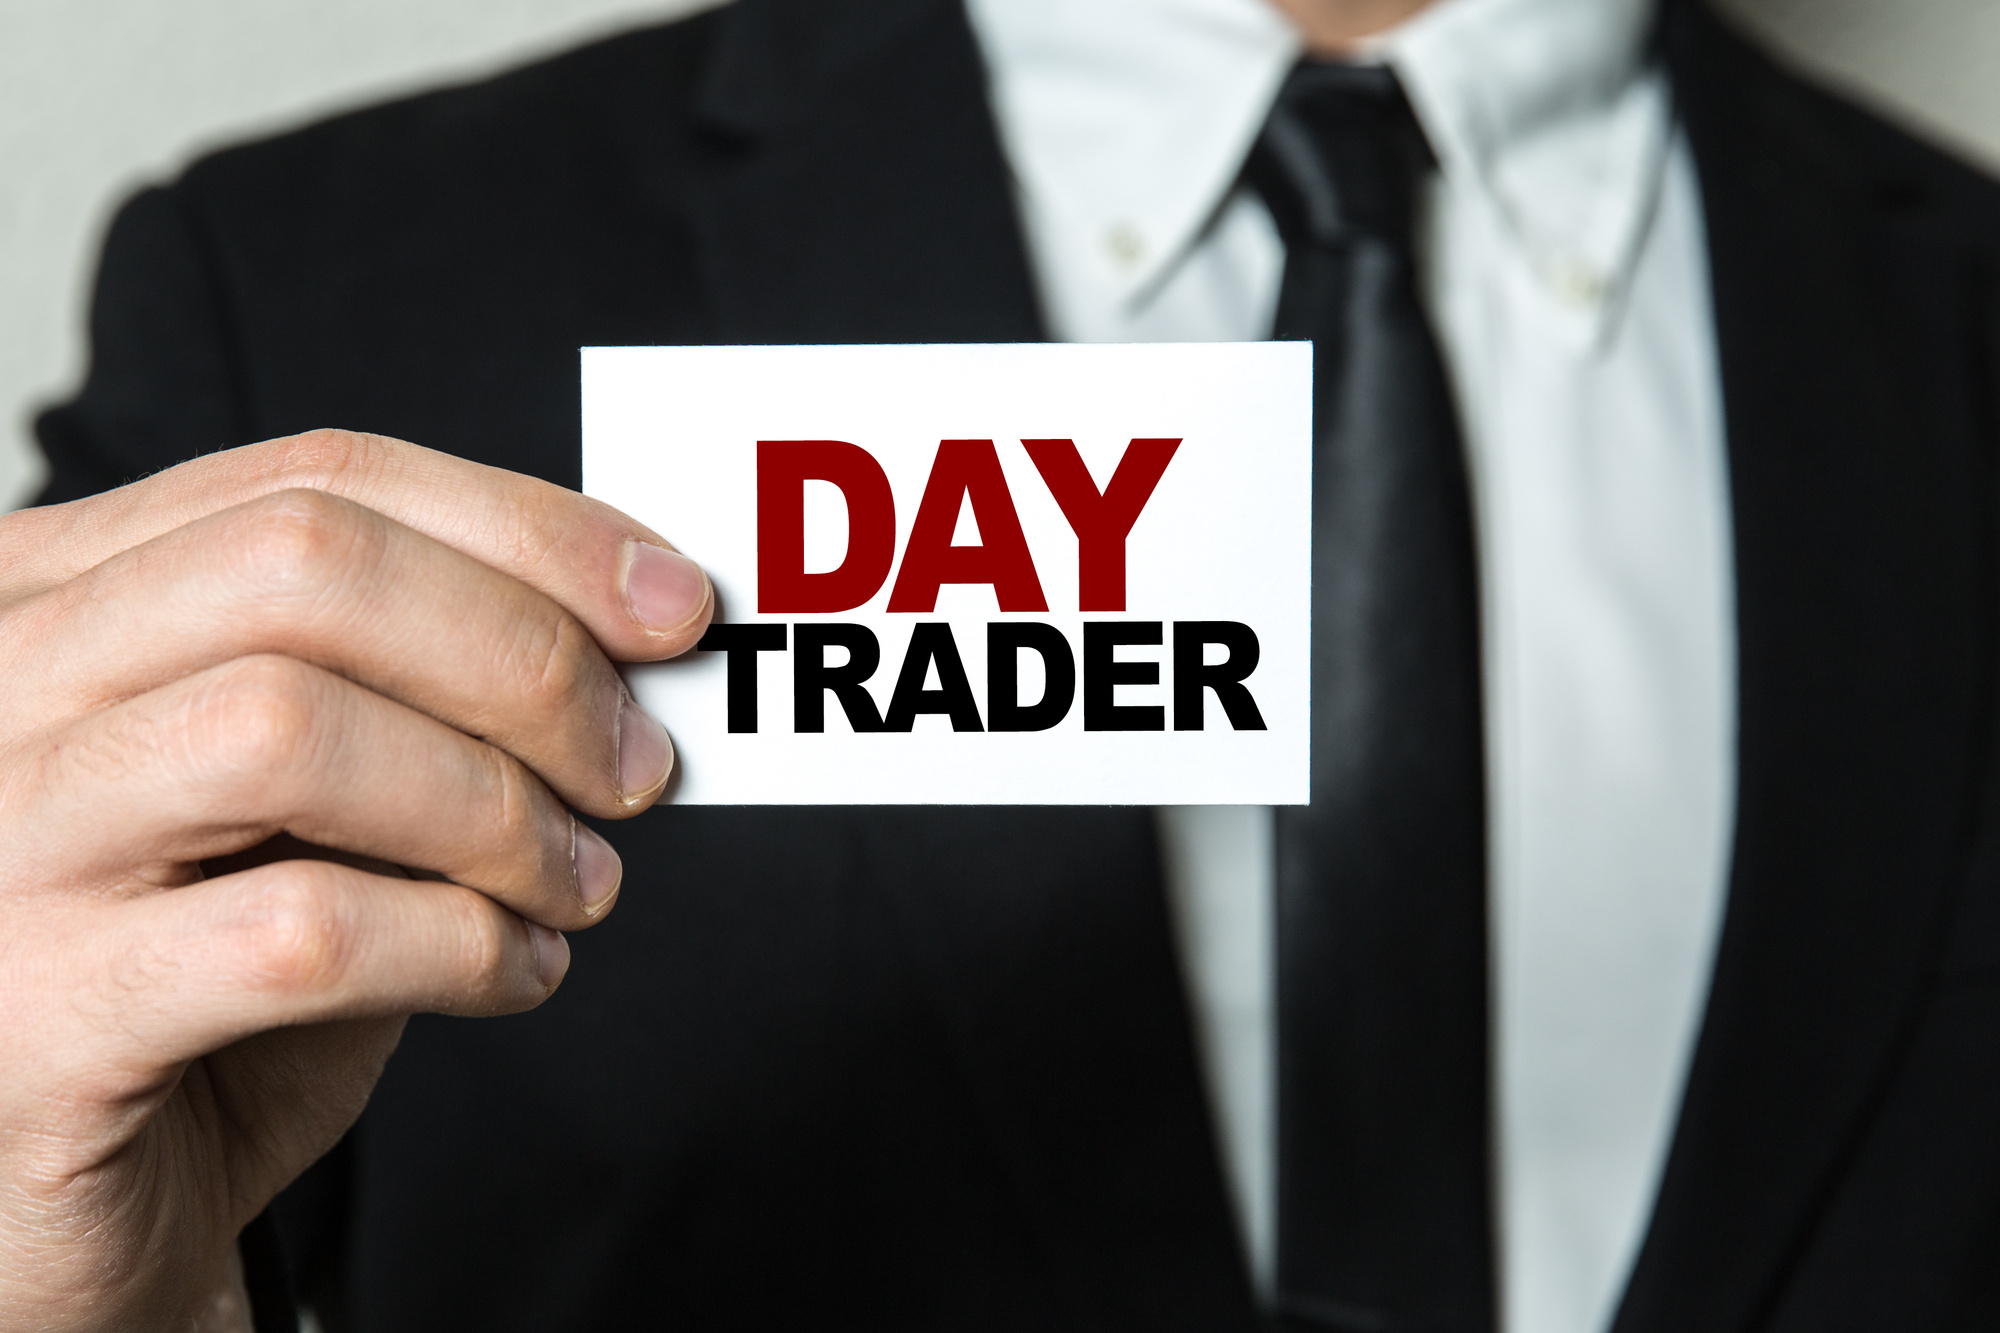 Getting into Day Trading: A Beginners Guide to Stocks